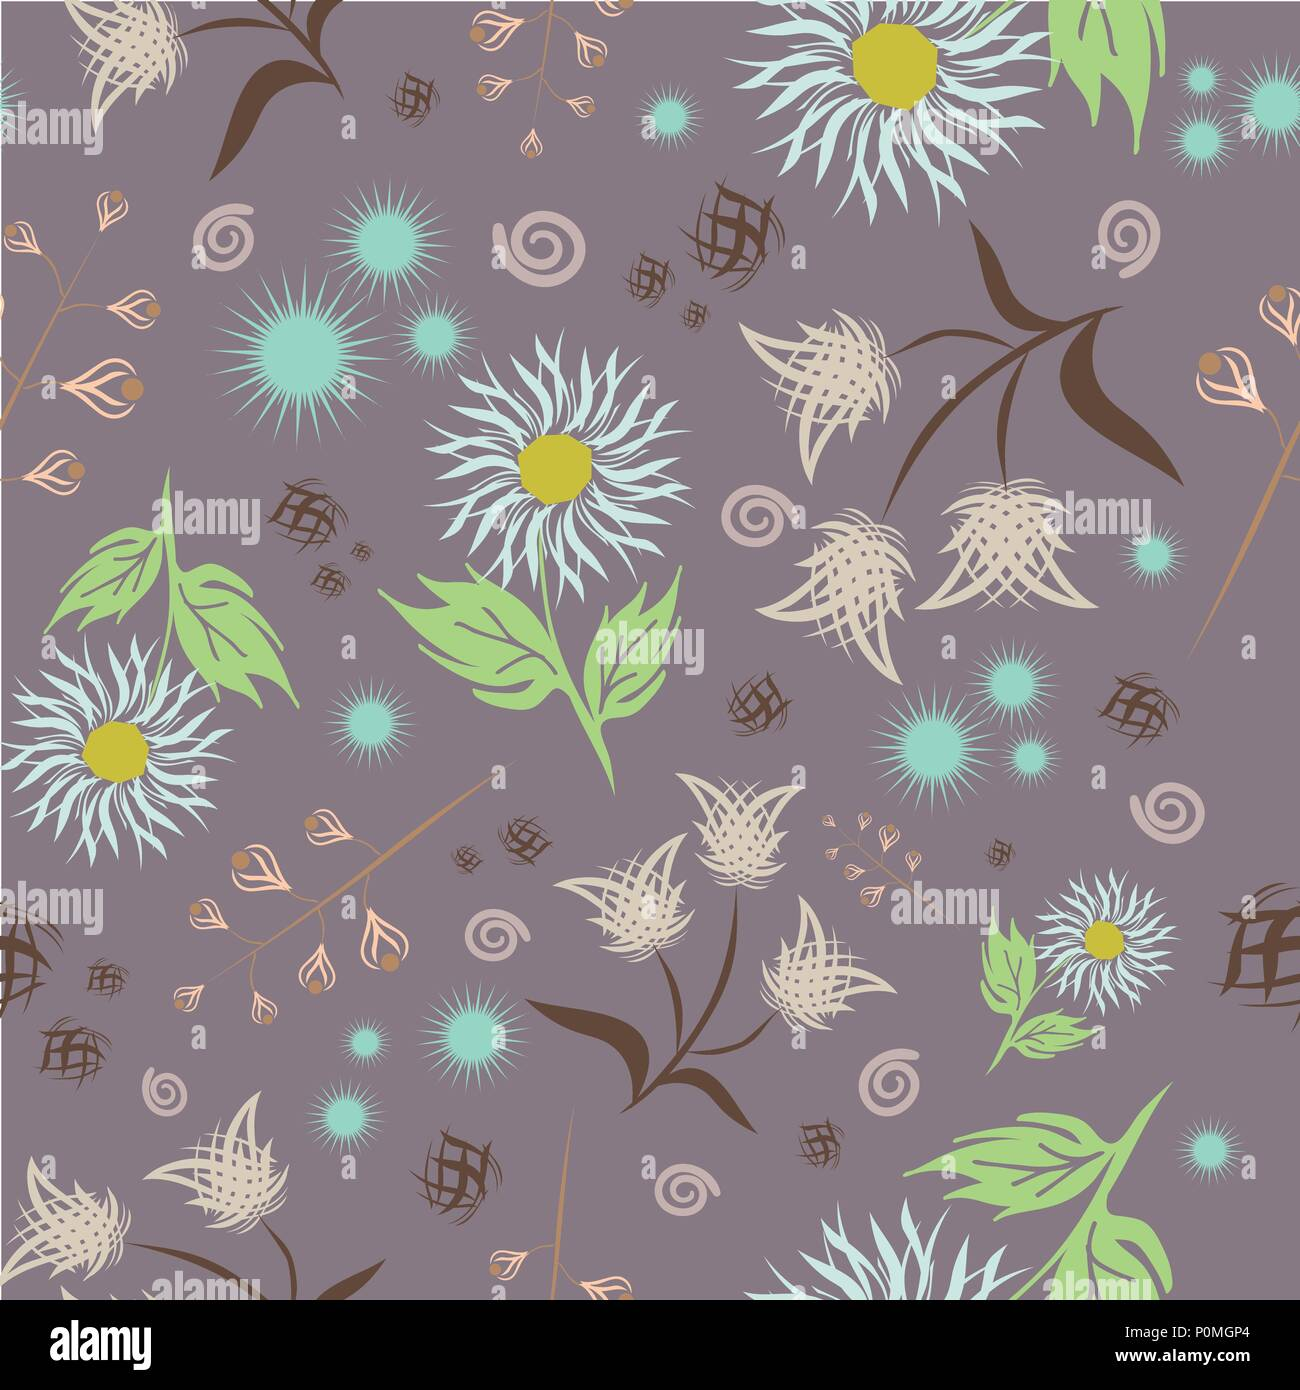 Seamless Floral Vector Pattern Modern Abstract Bright Colorful